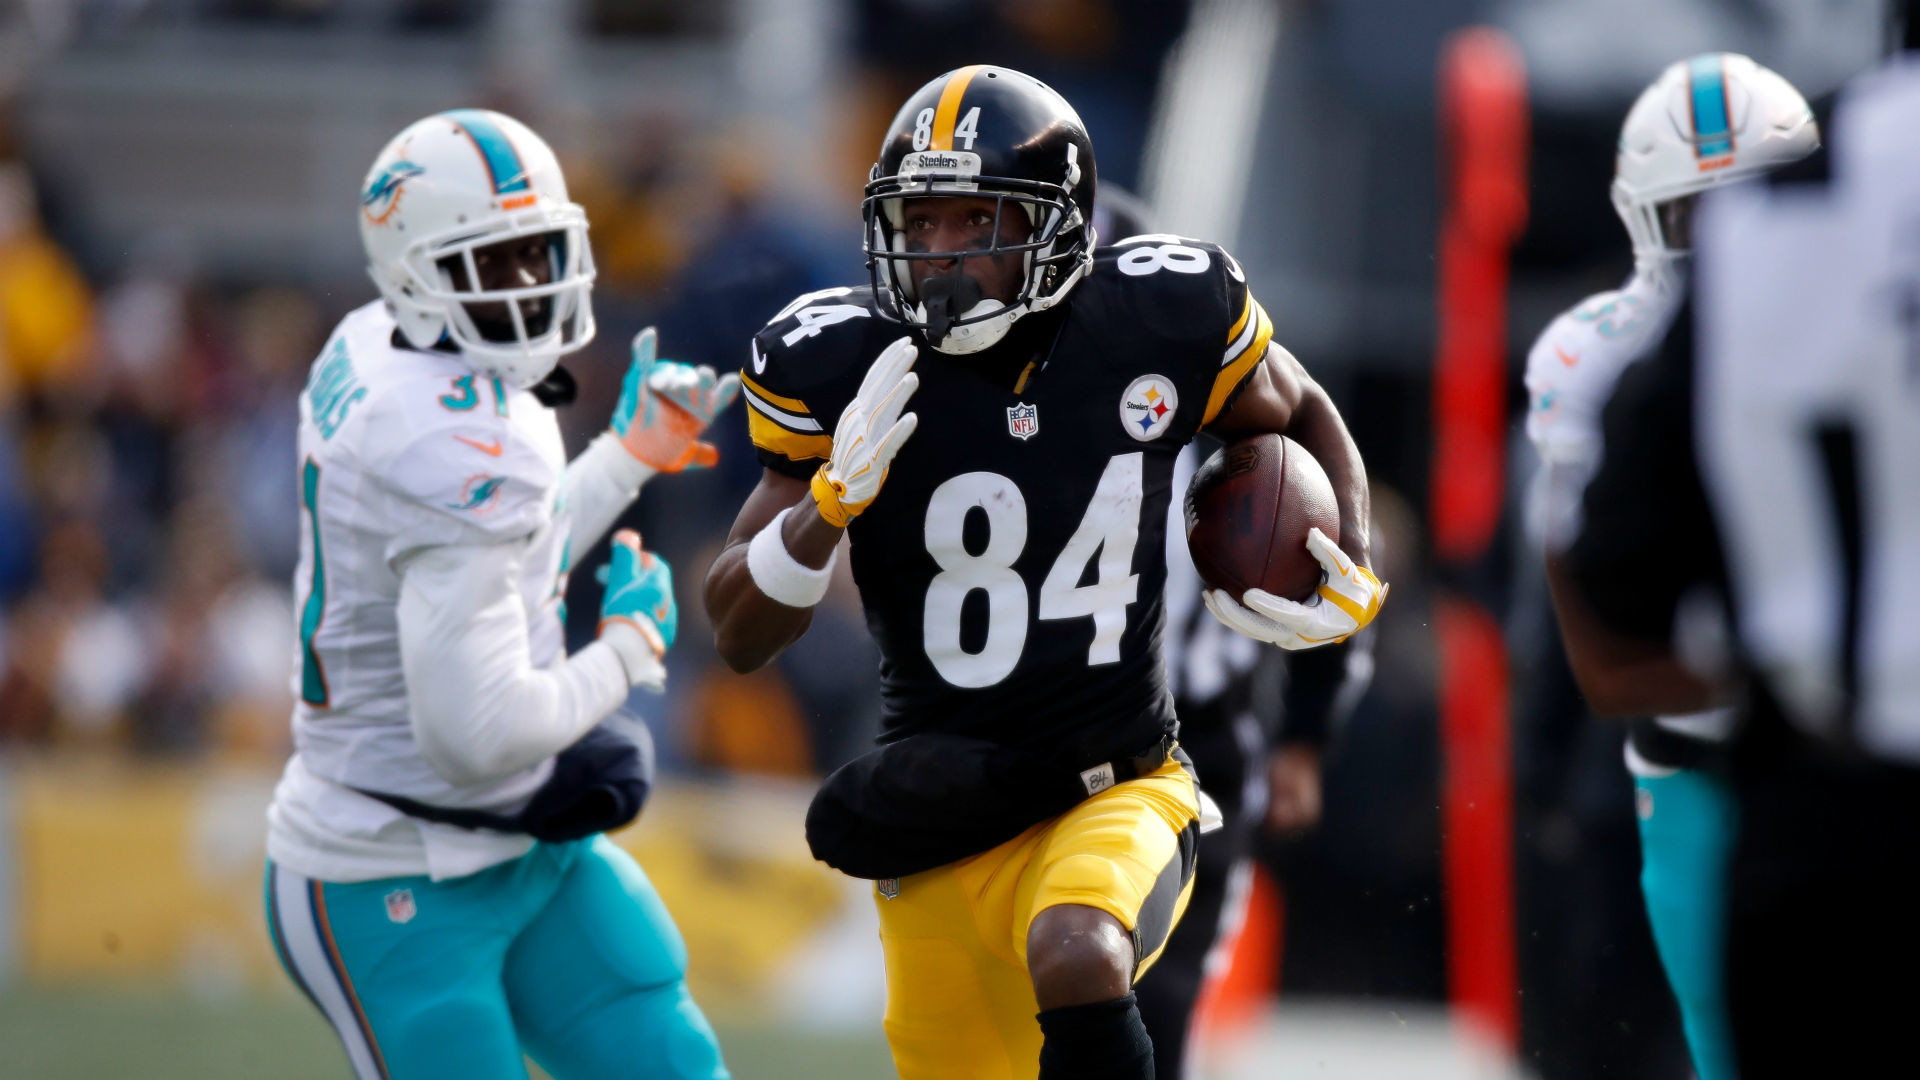 Steelers' Antonio Brown torches Miami on two 50-plus yard TDs | NFL |  Sporting News